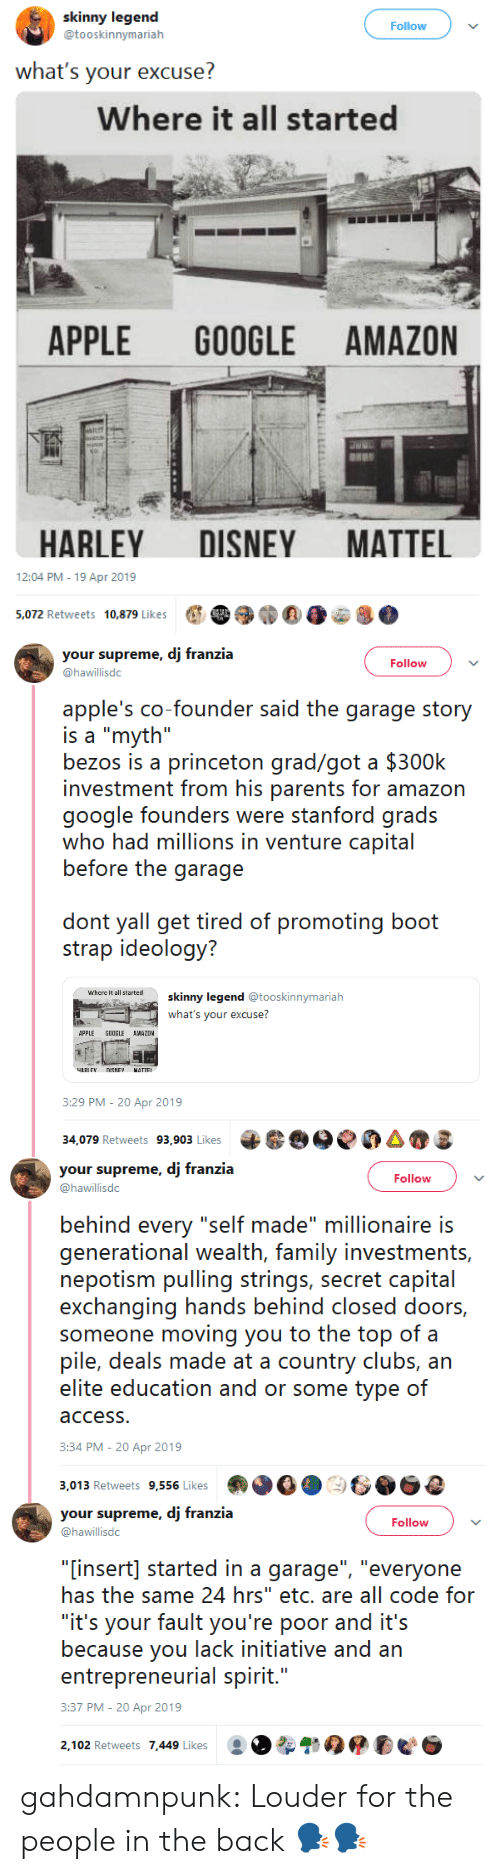 """Amazon, Apple, and Disney: skinny legend  @tooskinnymarialh  Follow  what's your excuse?  Where it all started  APPLE GOOGLE AMAZON  HARLEY DISNEY MATTEL  12:04 PM-19 Apr 2019  e 39)""""E0e8.  5,072 Retweets  10,879 Likes   your supreme, dj franzia  @hawillisdc  Follow  apple's co-founder said the garage story  is a """"myth""""  bezos is a princeton grad/got a $300k  investment from his parents for amazon  google founders wre staniord grads  who had millions in venture capital  before the garage  don yal gei üred of promoting booi  strap ideology?  where it all tartedskinny legend@  ooskinnymariah  what's your excuse?  APPLE GOOGLE AWAZOM  :29 PM-20 Apr 2019  34,079 Retweets 93,903 Likes 6e0AS   your supreme, dj franzia  @hawillisdc  Follow  behind every """"self made"""" millionaire is  generational wealith, farmily ivestrnnis,  nepotism pulling strings, secret capital  exchanging hands behind closed doors,  someone moving you to the top of a  pile, deals made at a country clubs, arn  access  3:34 PM-20 Apr 2019  3,013 Retweets 9,556 Likes   your supreme, dj franzia  @hawillisdc  Follow  """"[insert] started in a garage"""", """"everyone  has the same 24 hrs"""" etc. are all code for  """"it's your fault you're poor and it's  because you lack initiative and an  entreprenerial spirit...  3:37 PM-20 Apr 2019  2,102 Retweets 7,449 Likes gahdamnpunk: Louder for the people in the back 🗣🗣"""